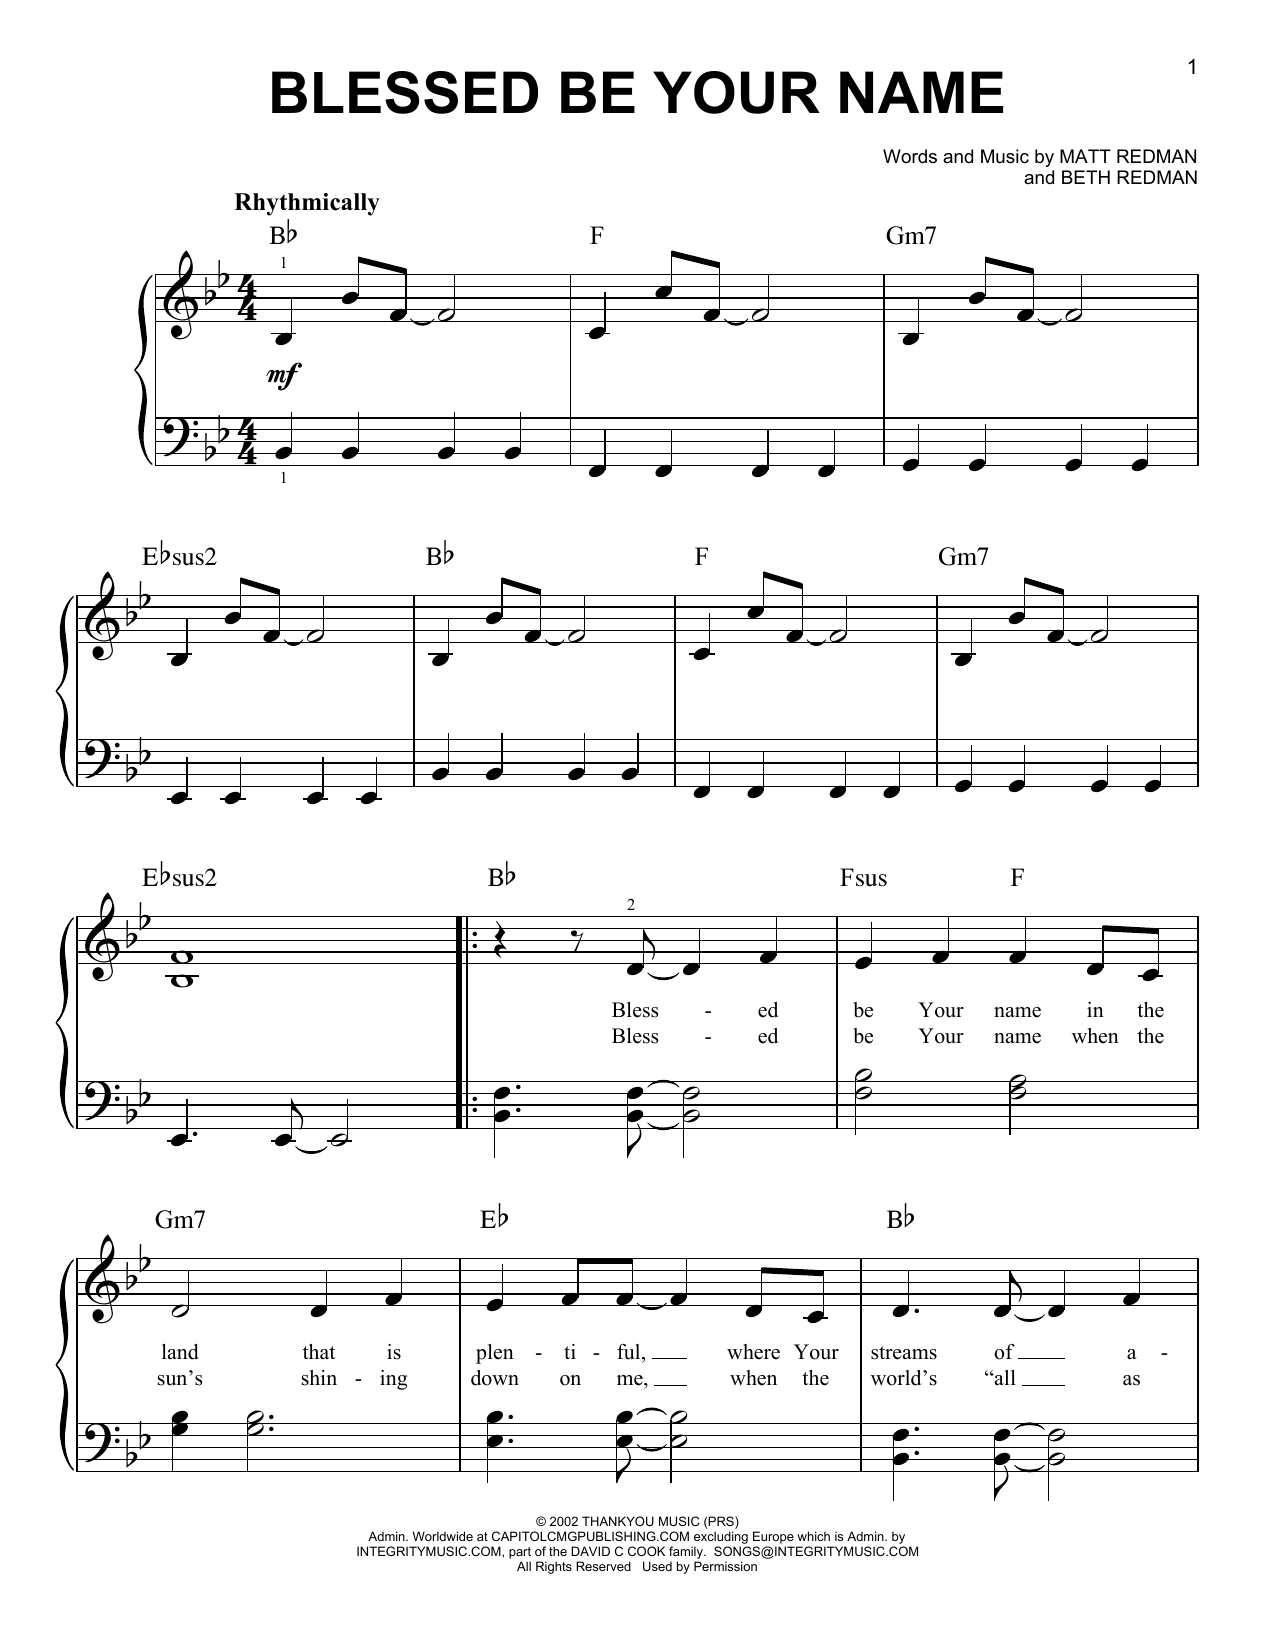 Blessed Be Your Name Chords Sheet Music Digital Files To Print Licensed Beth Redman Digital